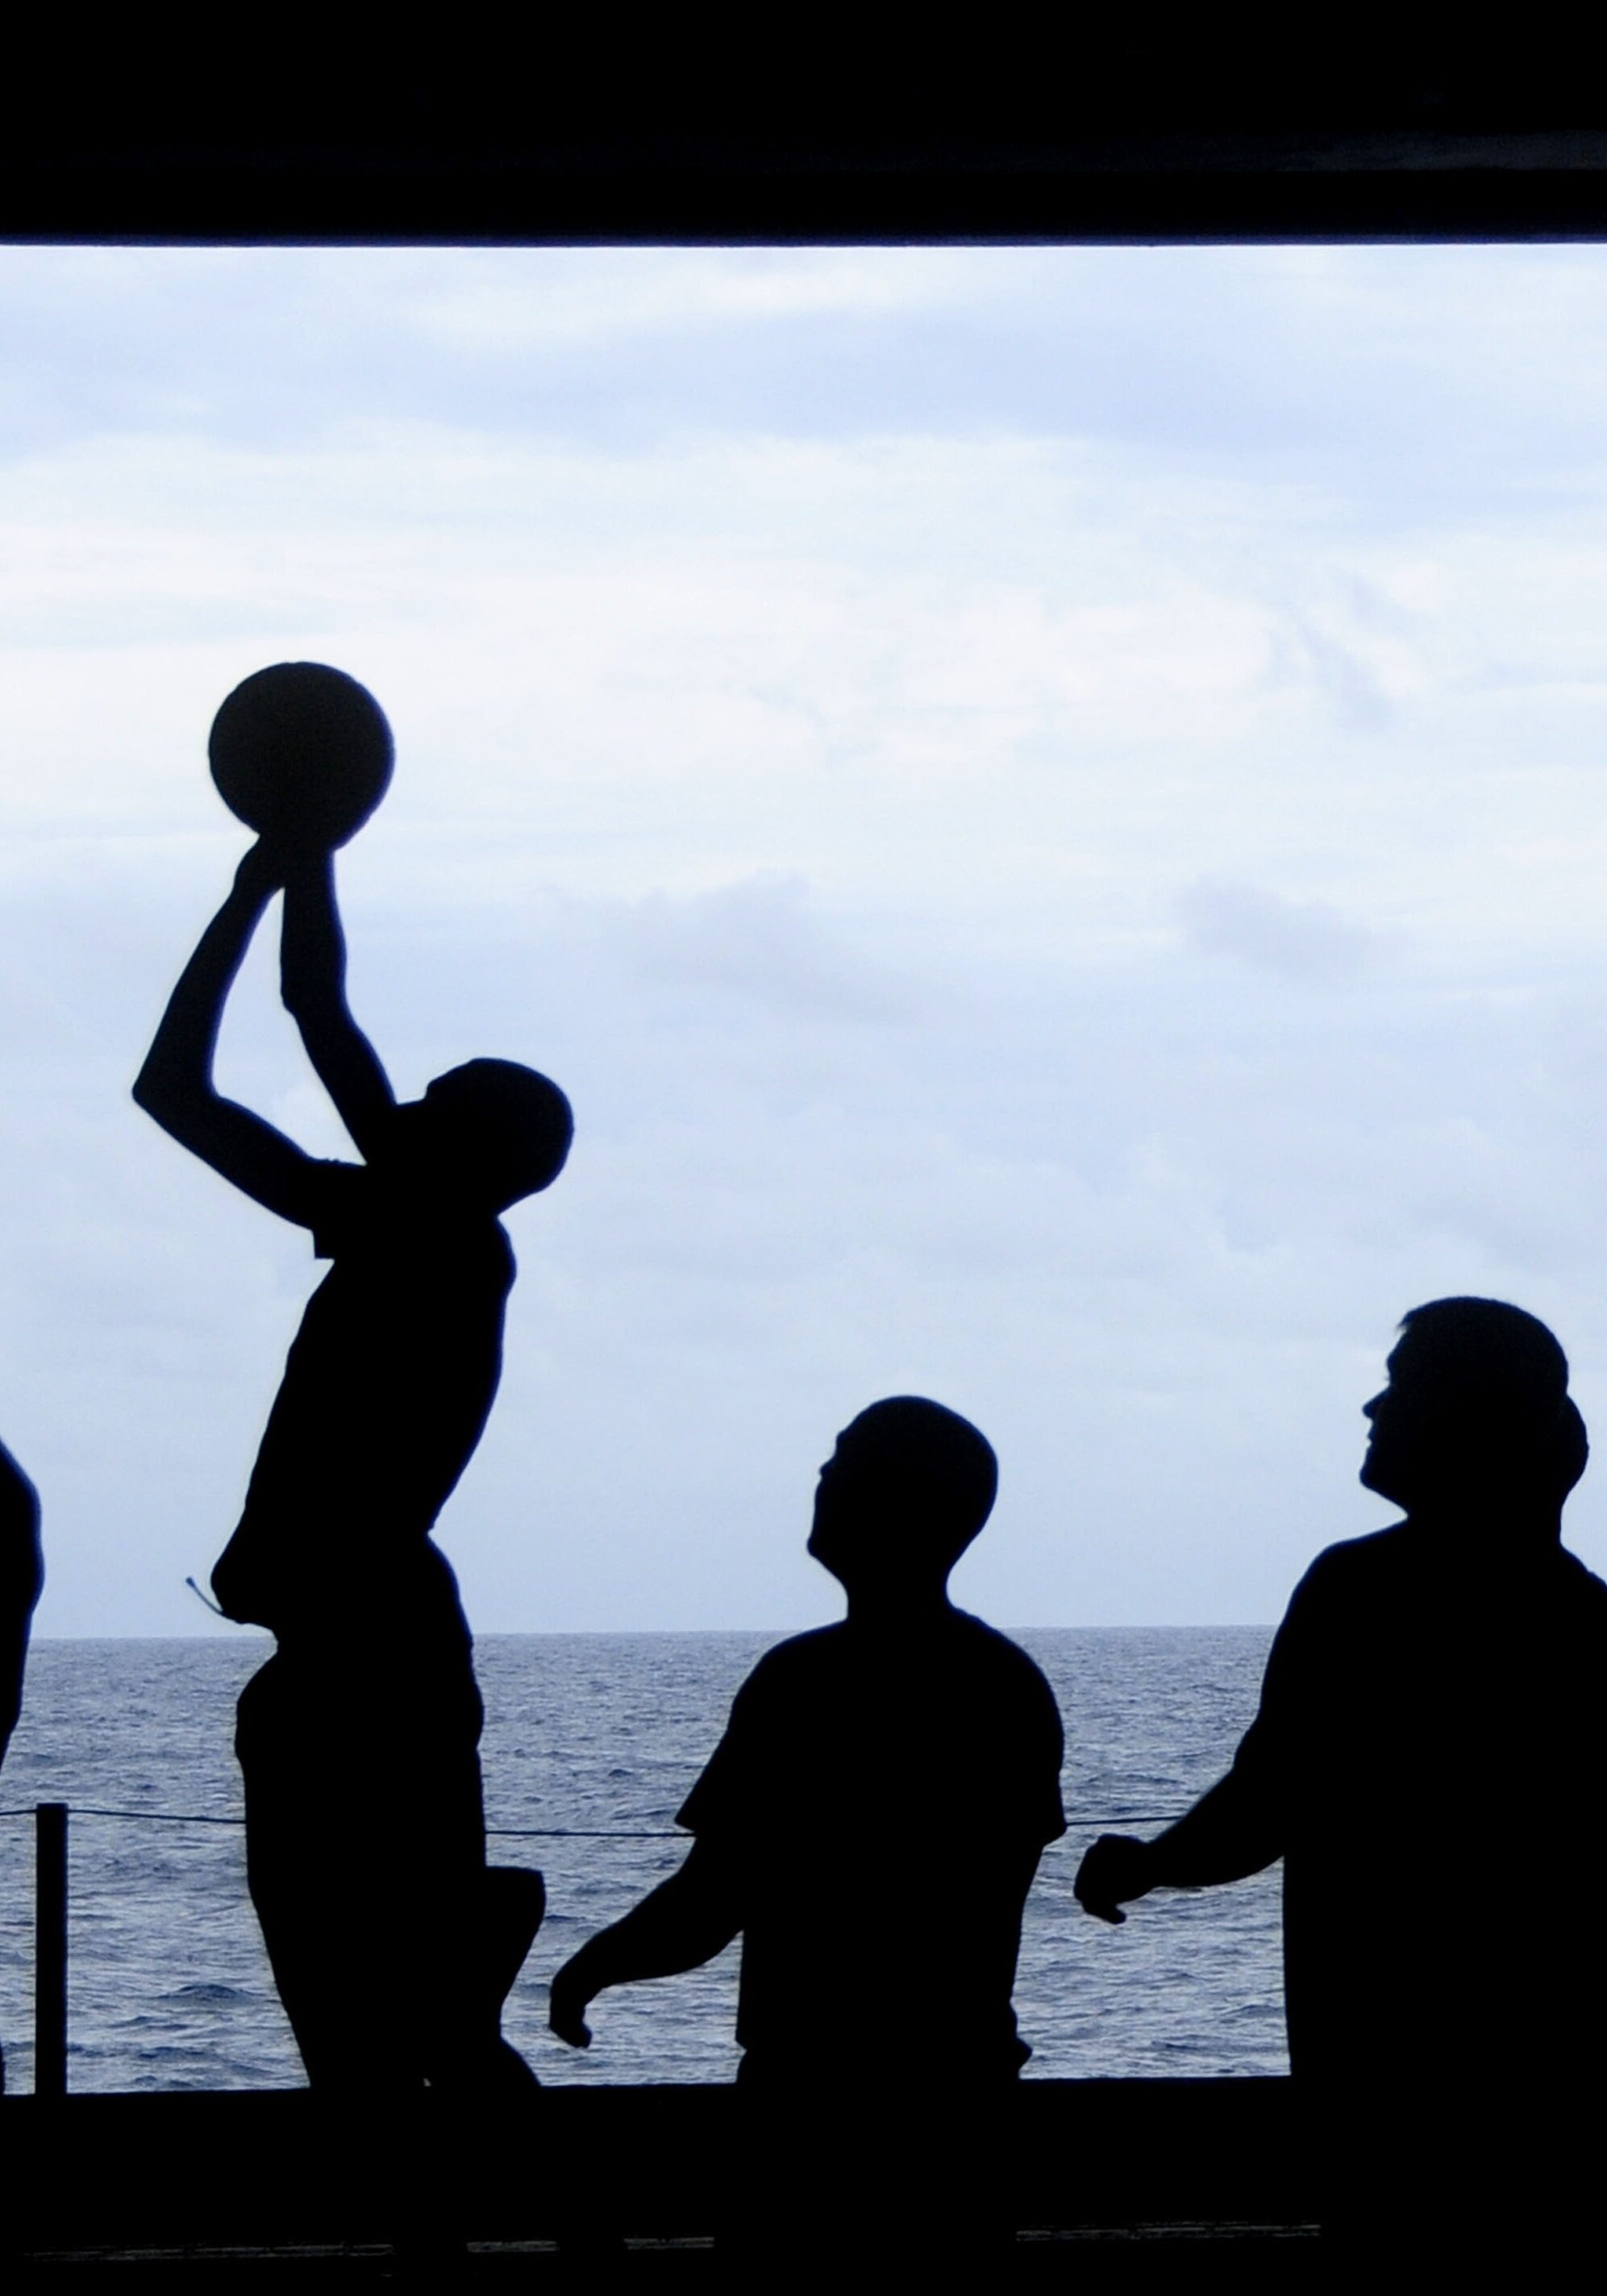 silhouette-of-men-playing-basketball-69773